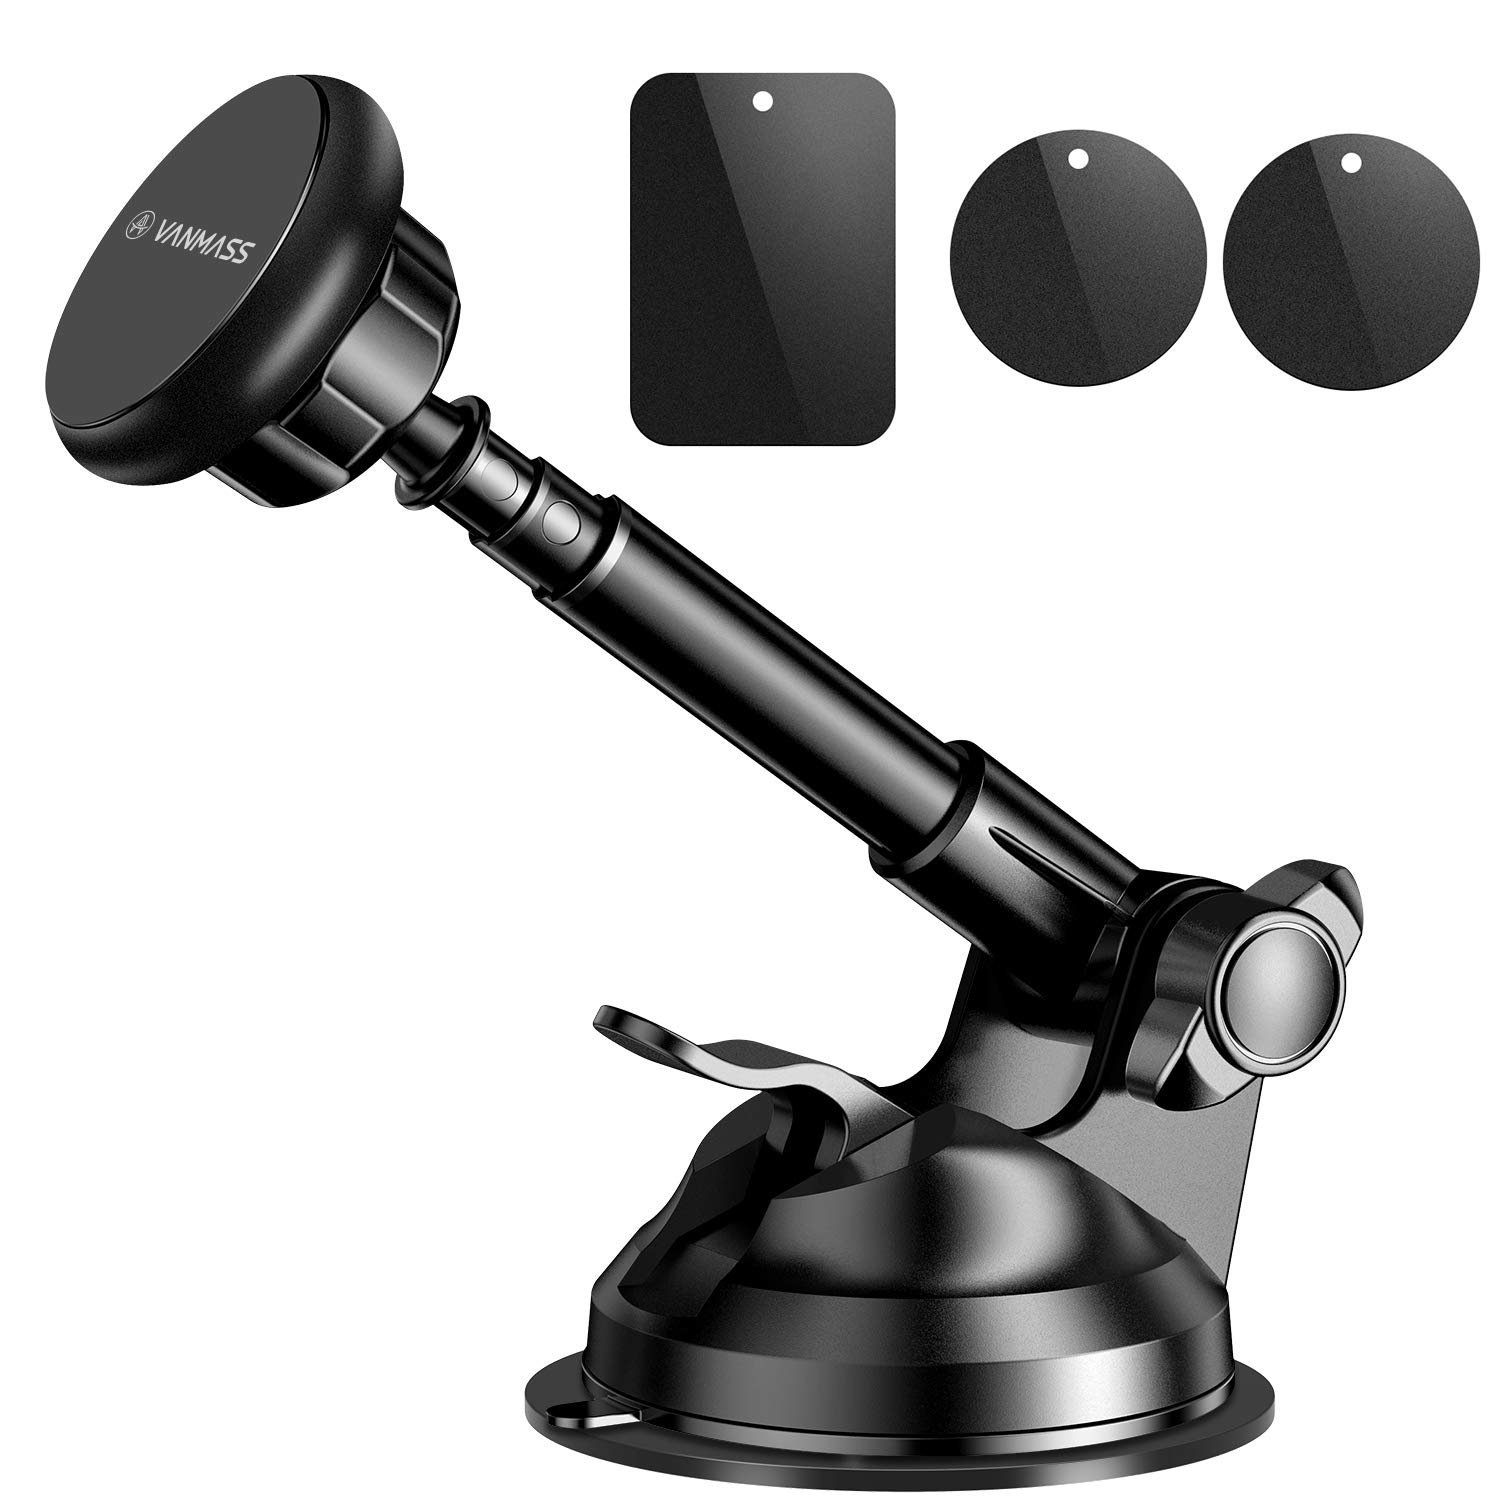 VANMASS Magnetic Phone Car Mount, Universal Phone Holder for Car Dashboard, Windshield, Air Vent, One Hand Operation, Compatible with iPhone, Samsung & More by VANMASS